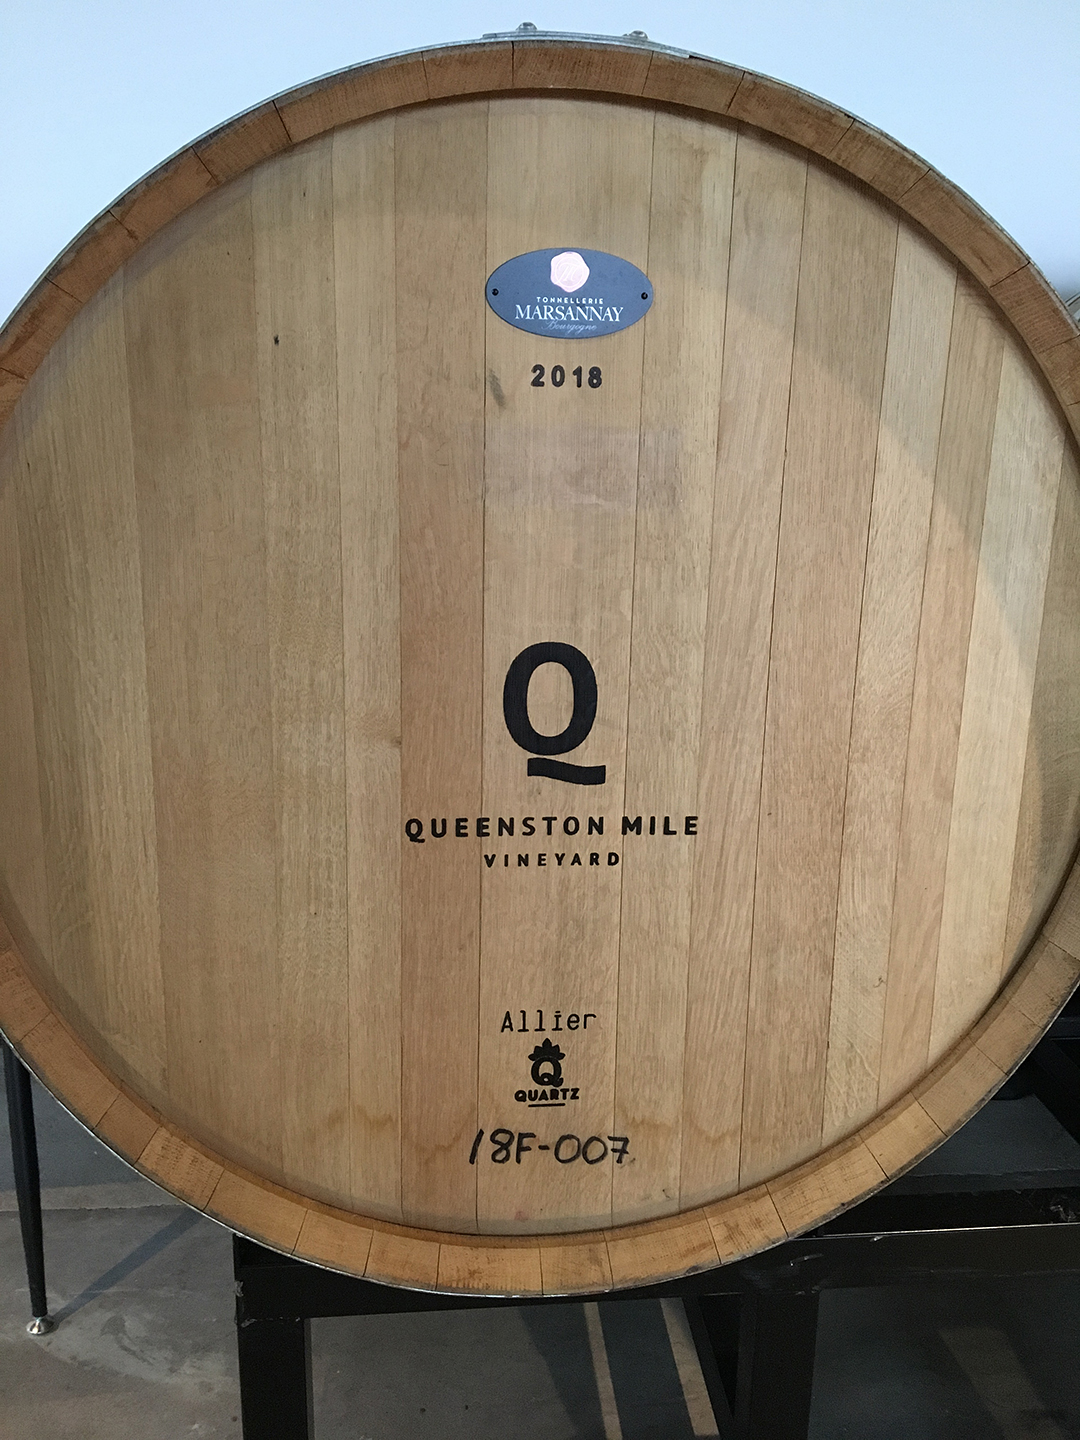 the end of a large barrel with the branding 'Queenston Mile Vinyeard'